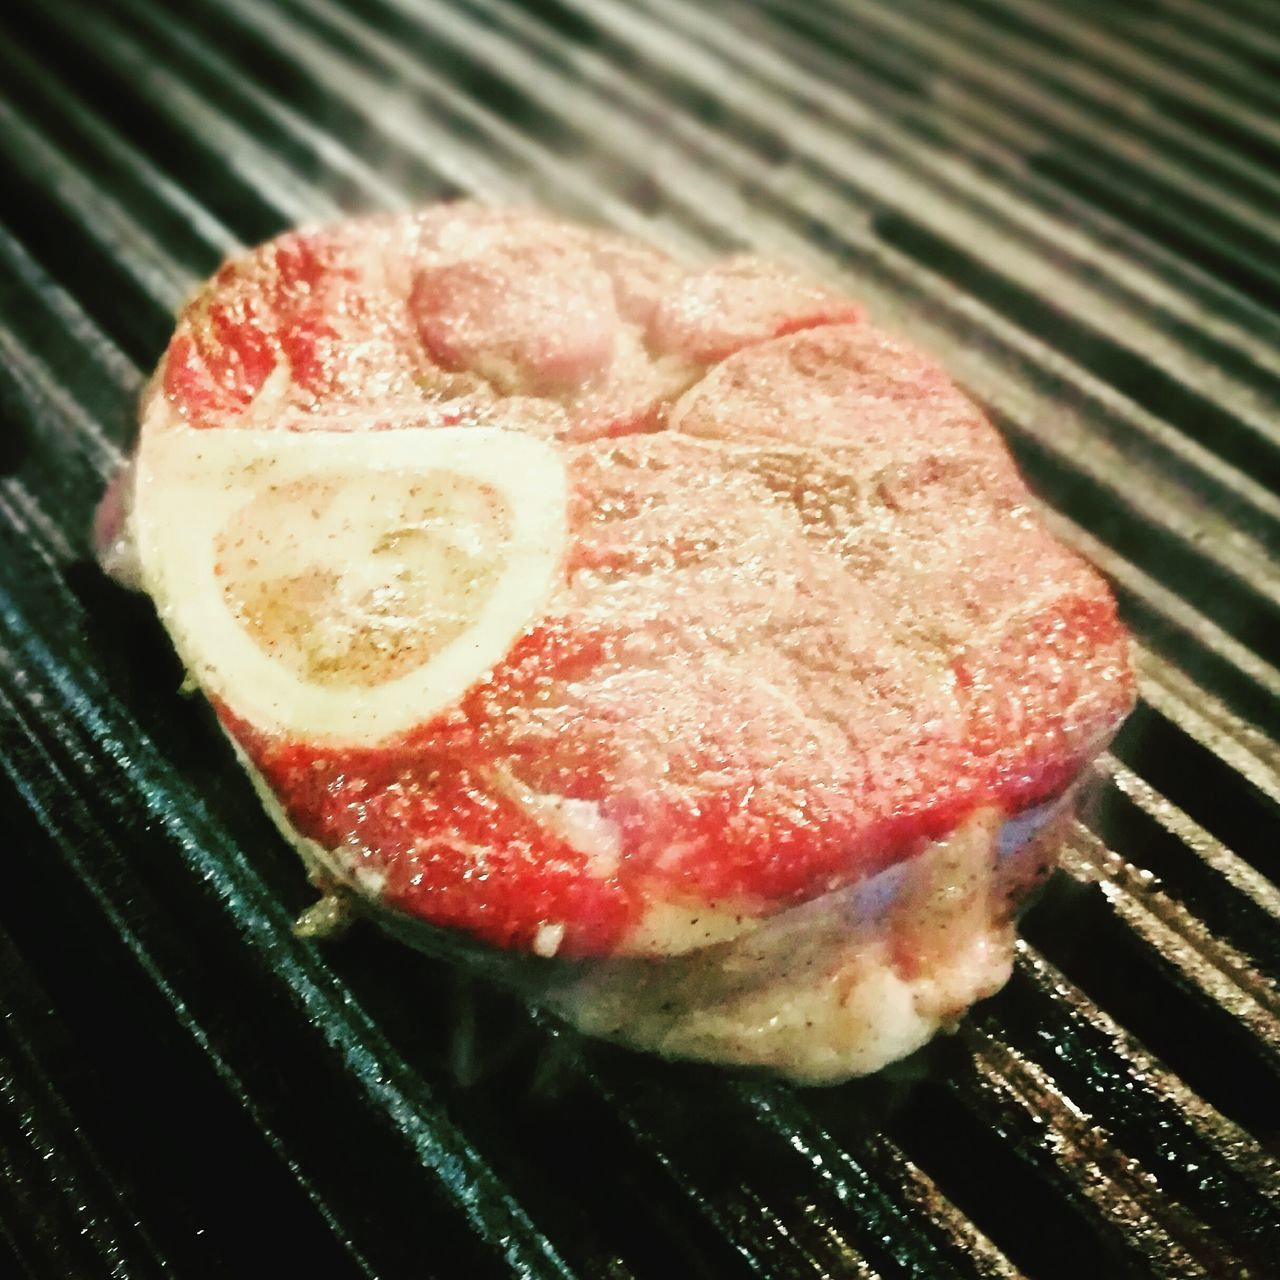 Food And Drink Freshness Healthy Eating Red Meat Meat Beef Grill